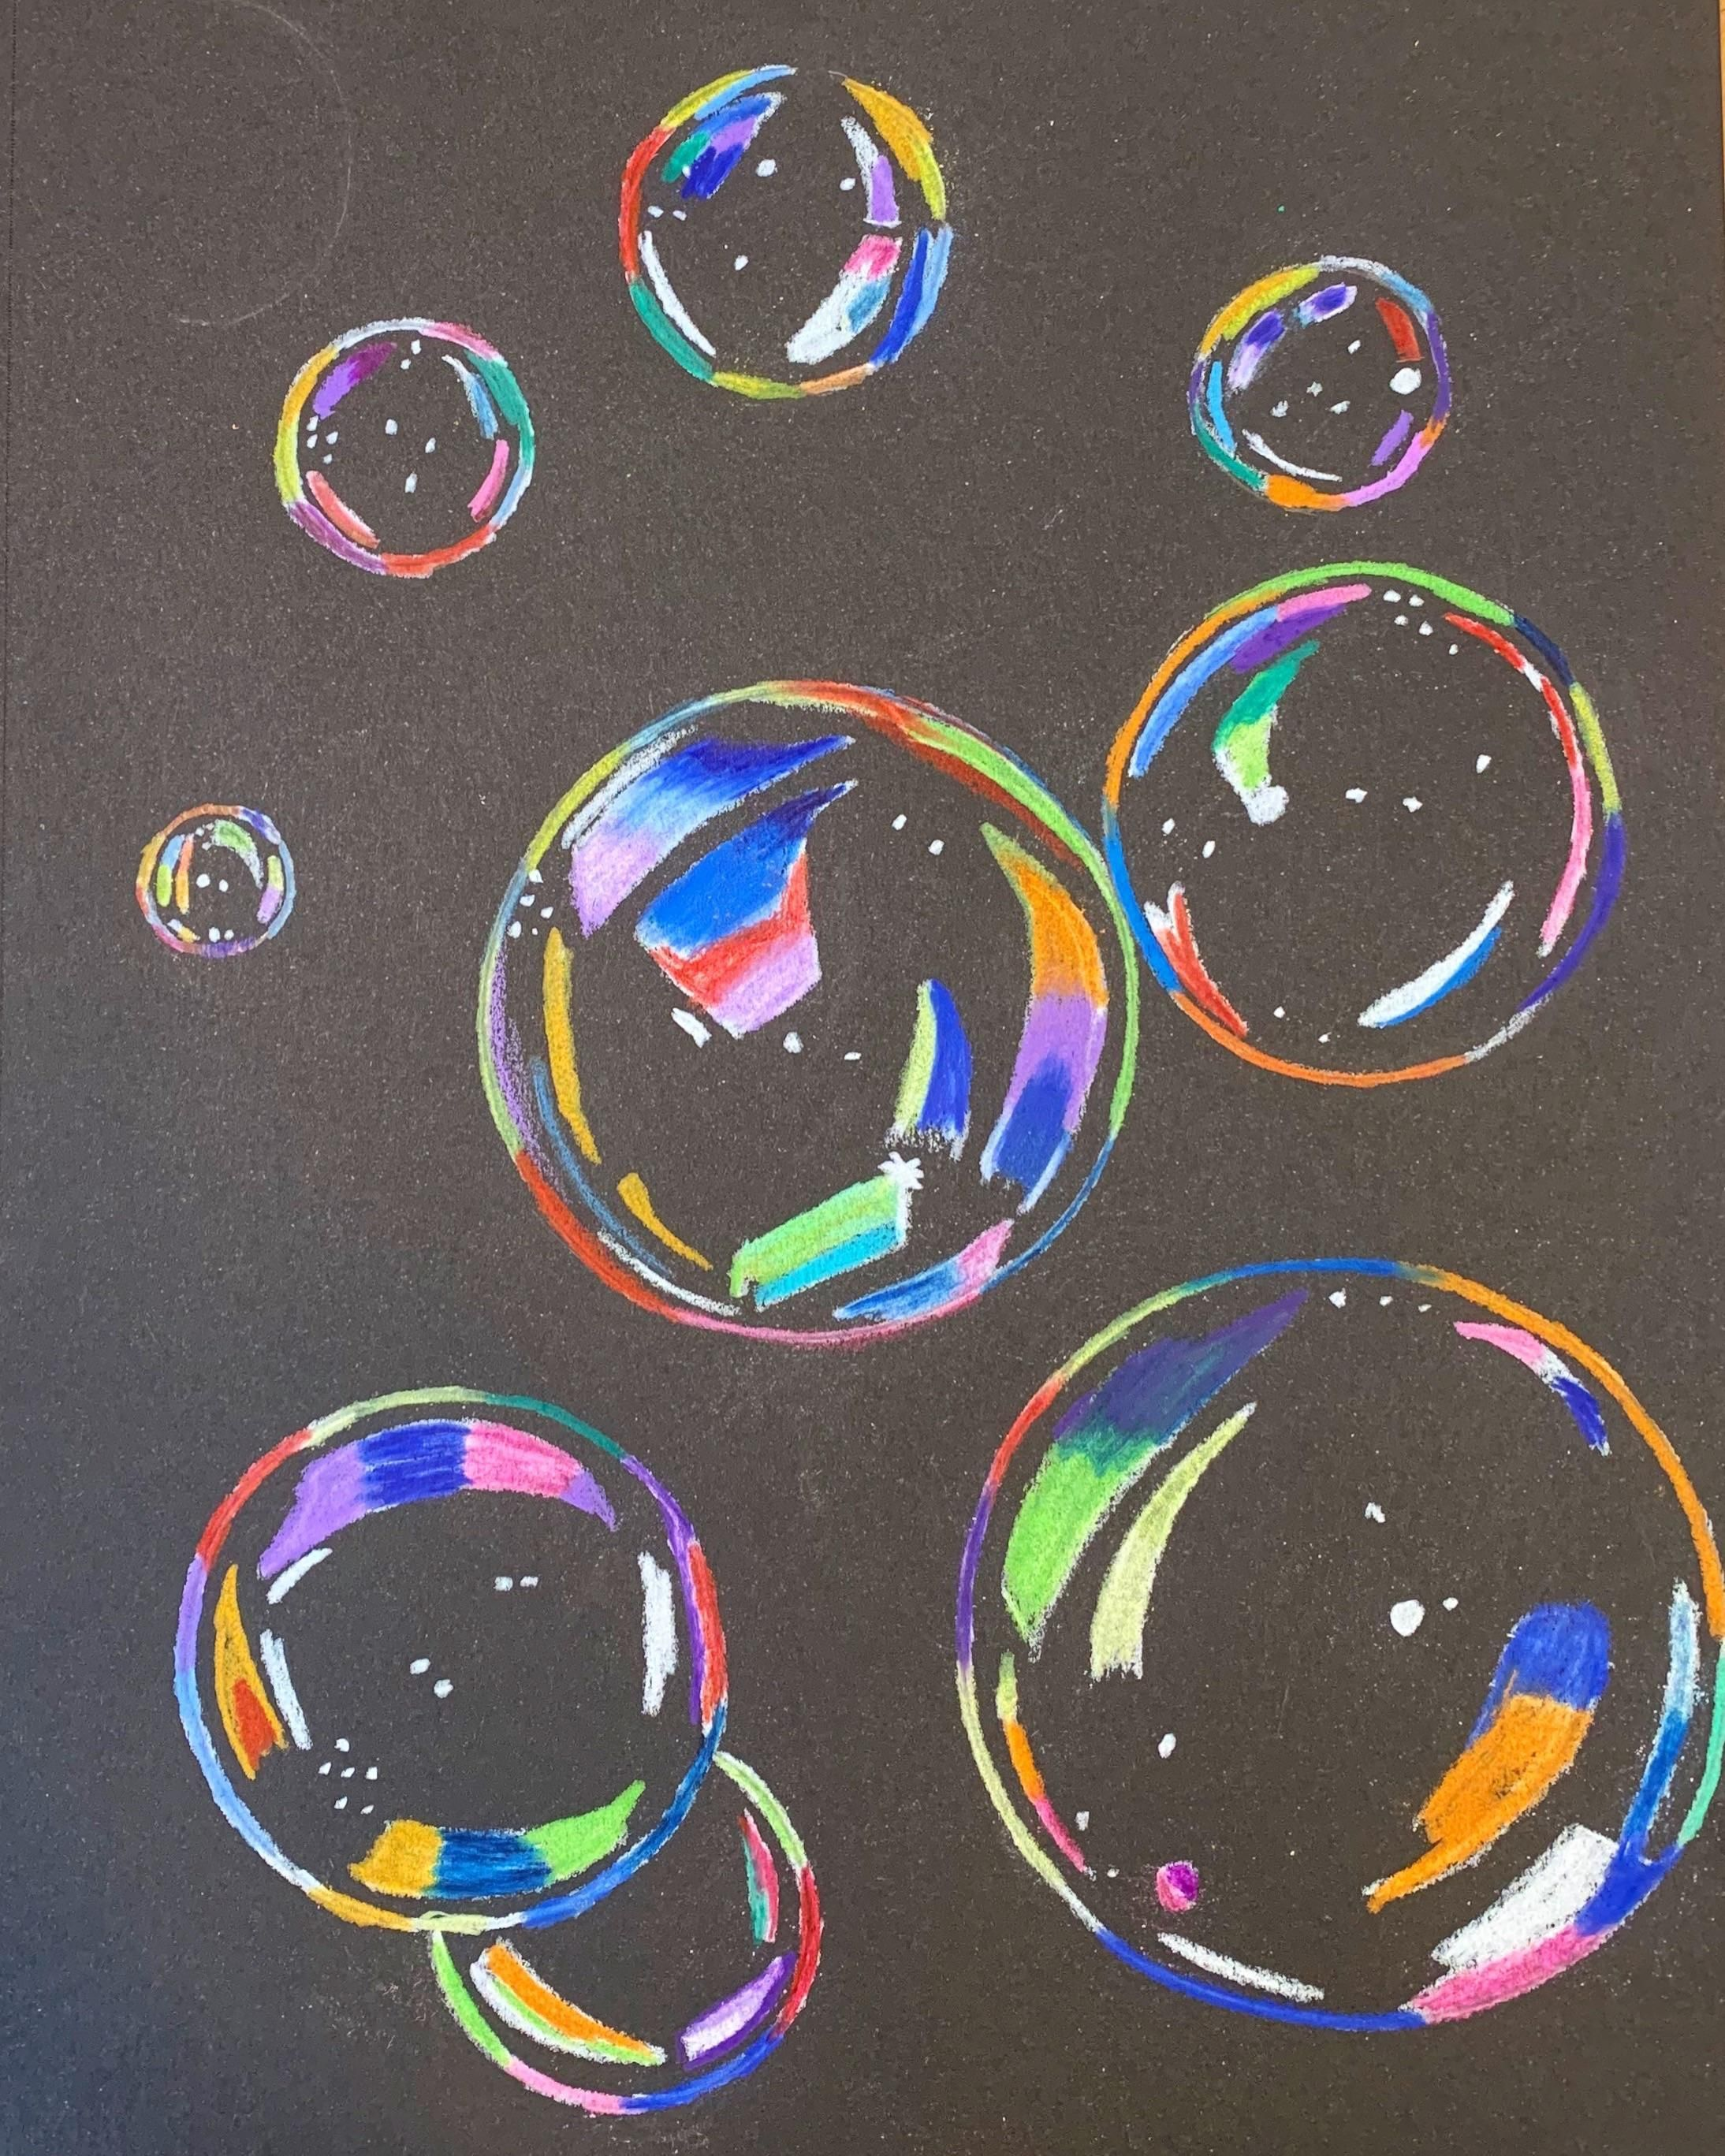 Drew bubbles a few months ago heres a second attempt at it. JayMayArtwork – Welcome to Blog